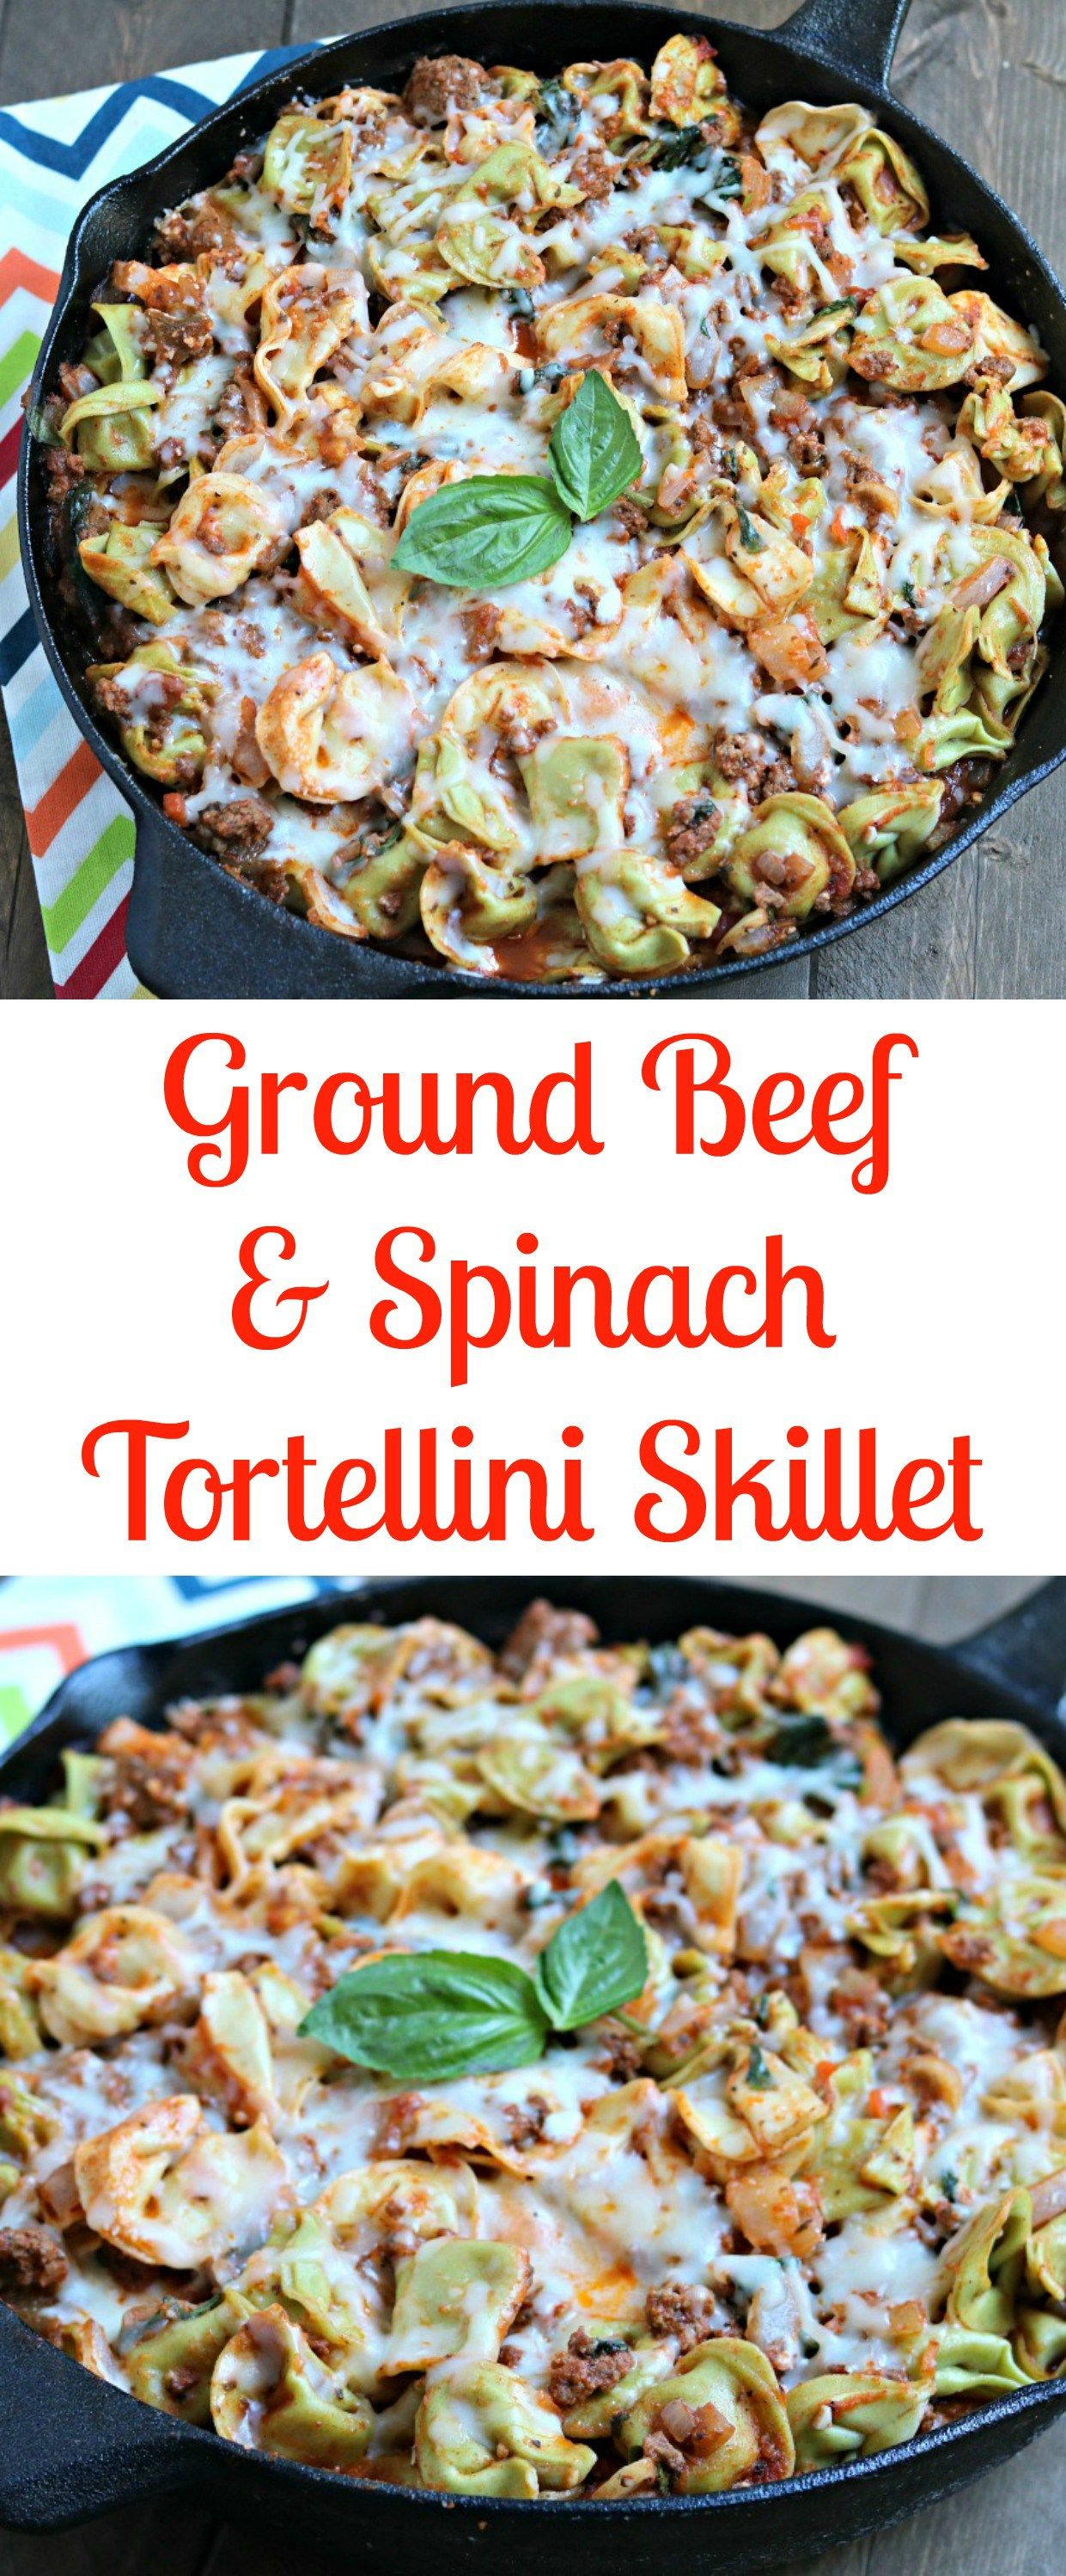 Ground Beef Tortellini Spinach Skillet Tortellini Recipes Ground Beef And Spinach Ground Beef Recipes Healthy